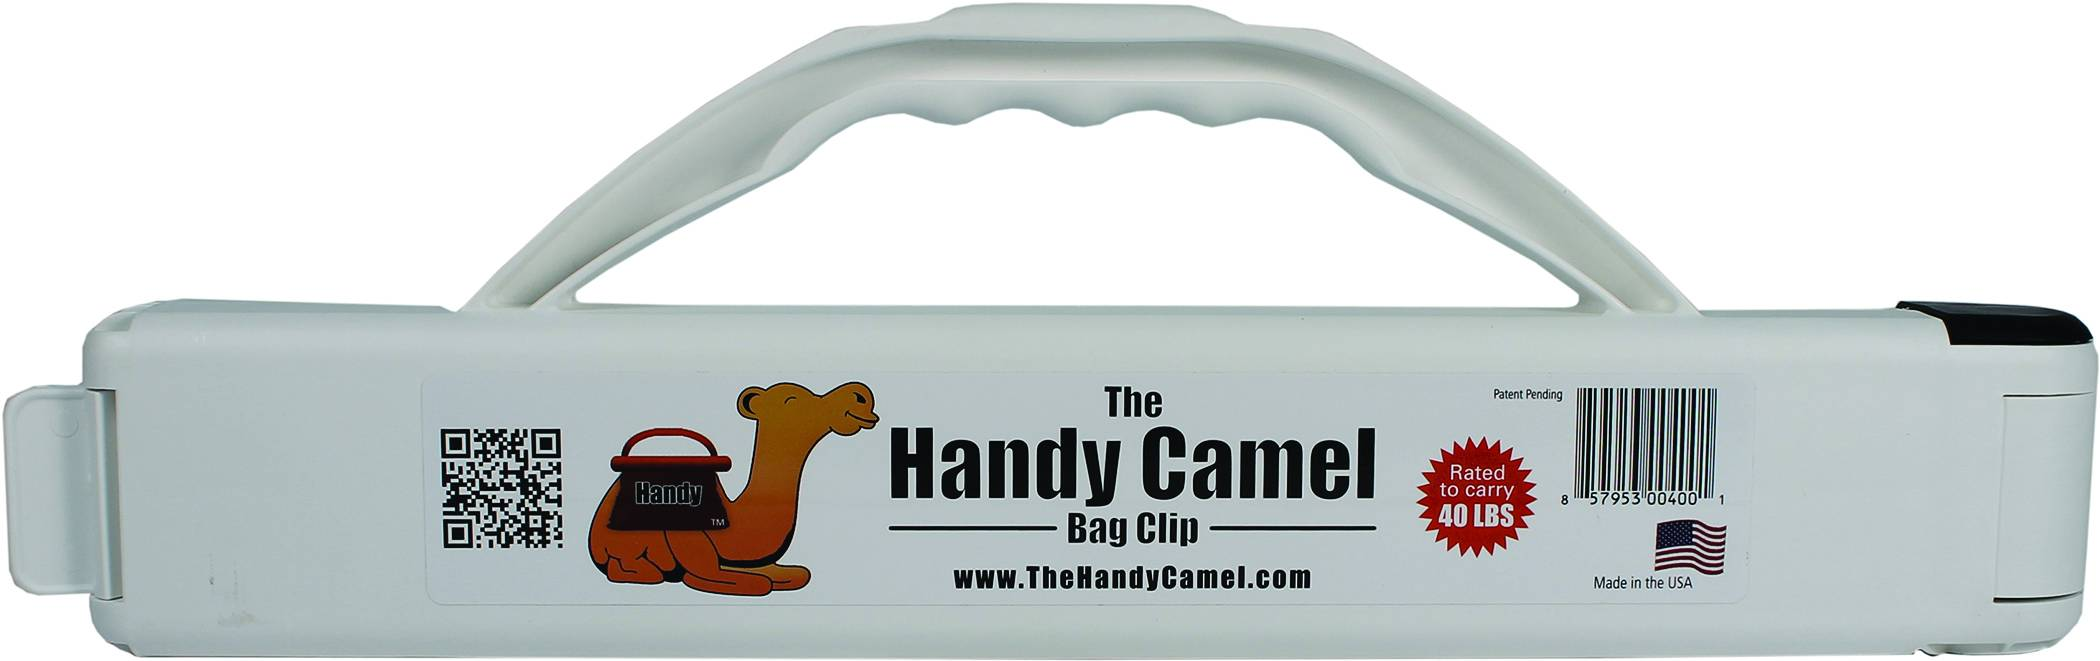 HANDY CAMEL Bag Clip